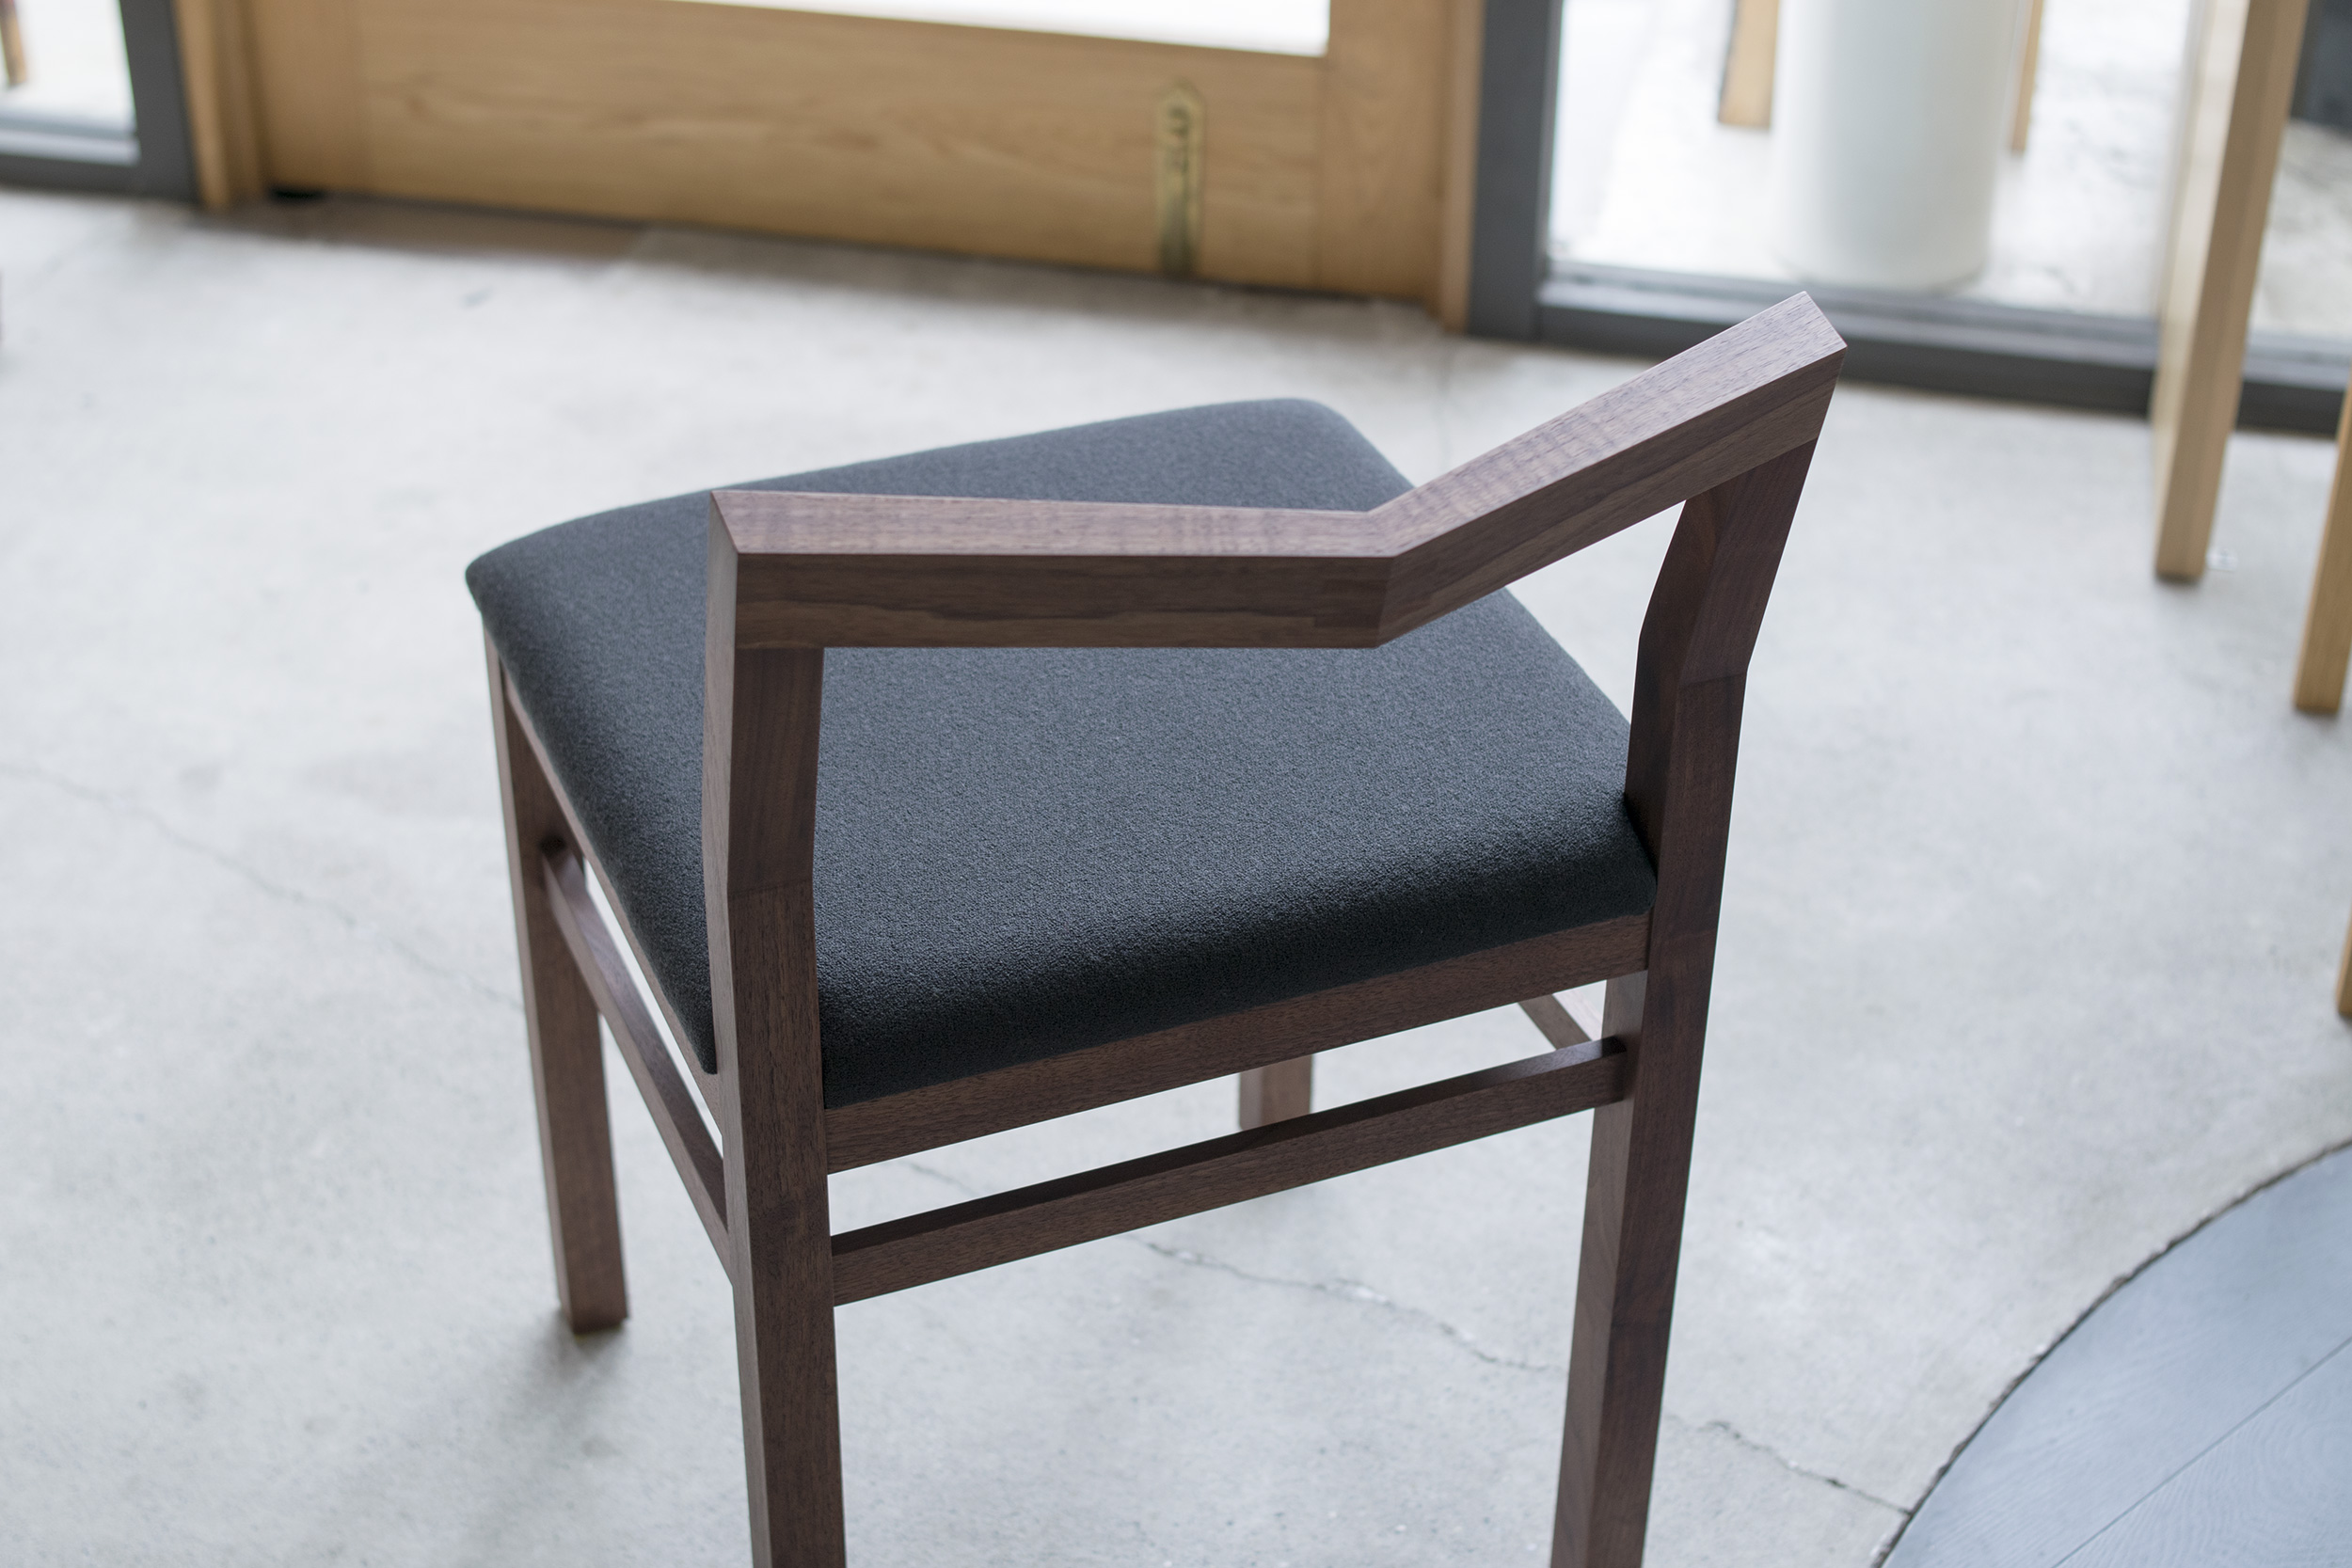 PICO chair ピコチェア